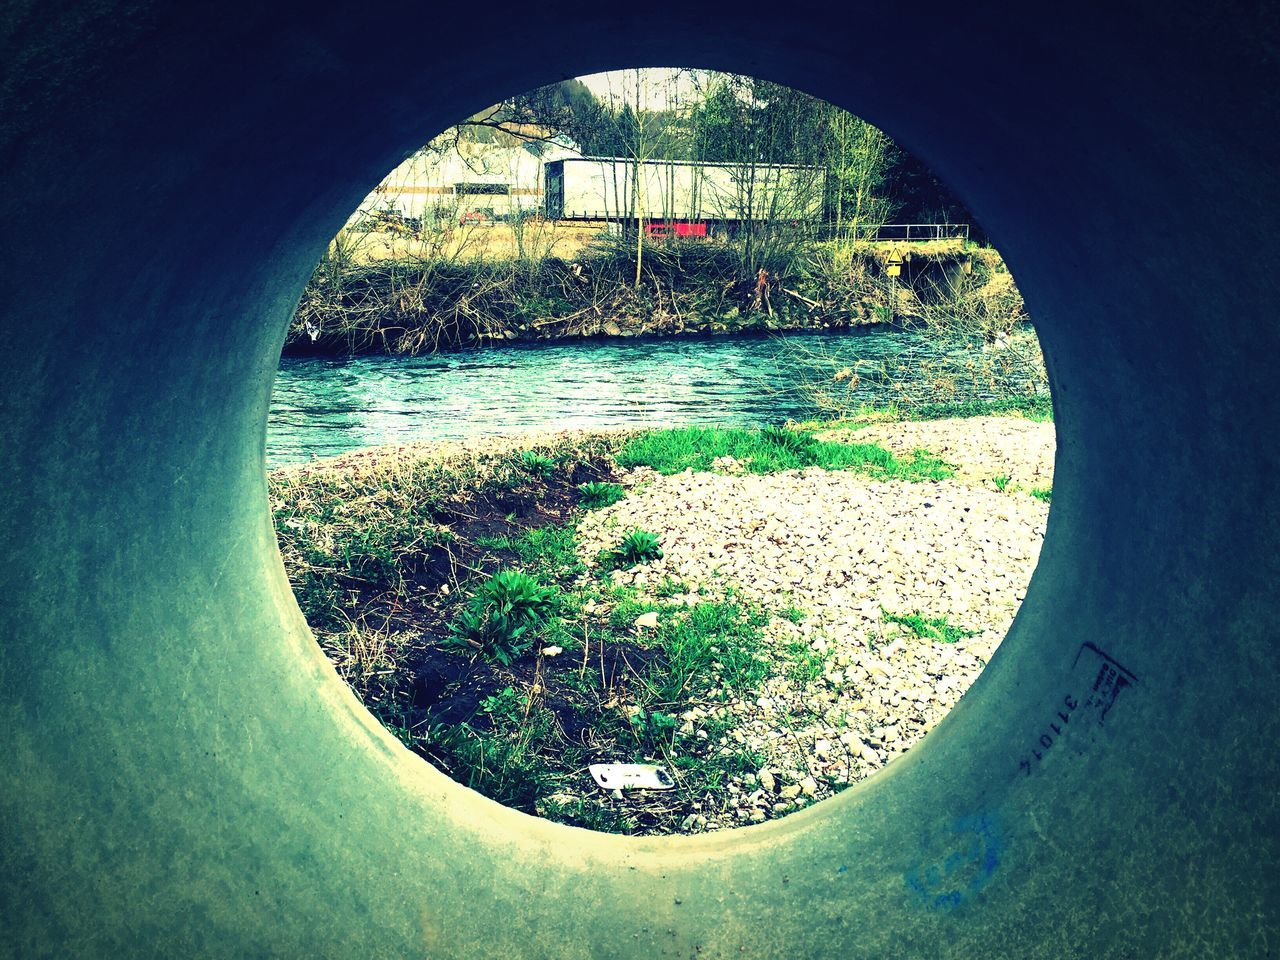 River Seen From Concrete Pipe